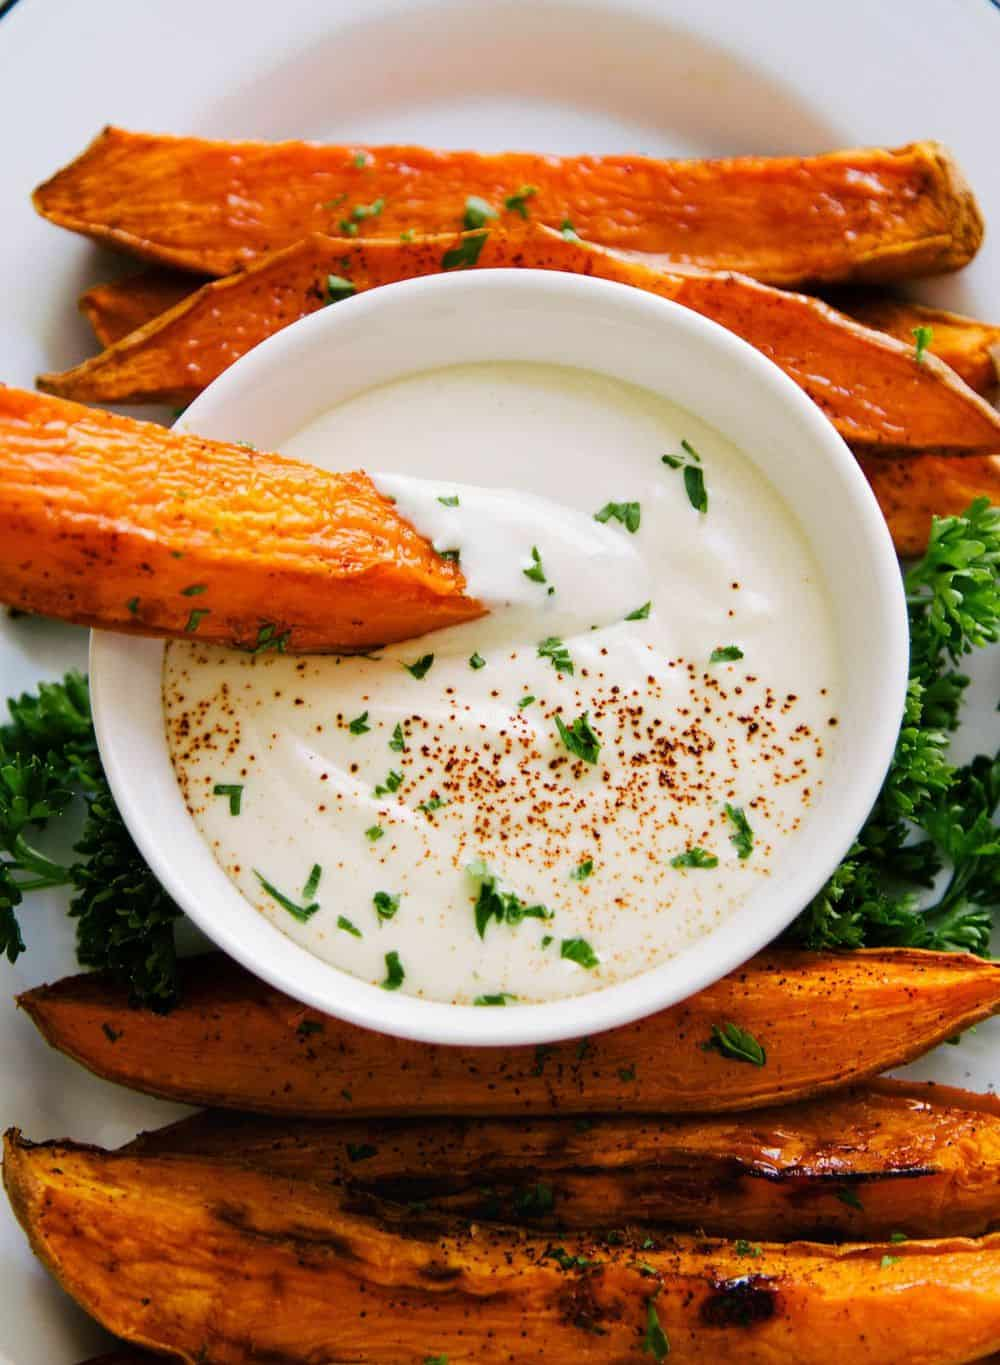 baked sweet potato wedges with vegan garlic aioli sauce for dipping